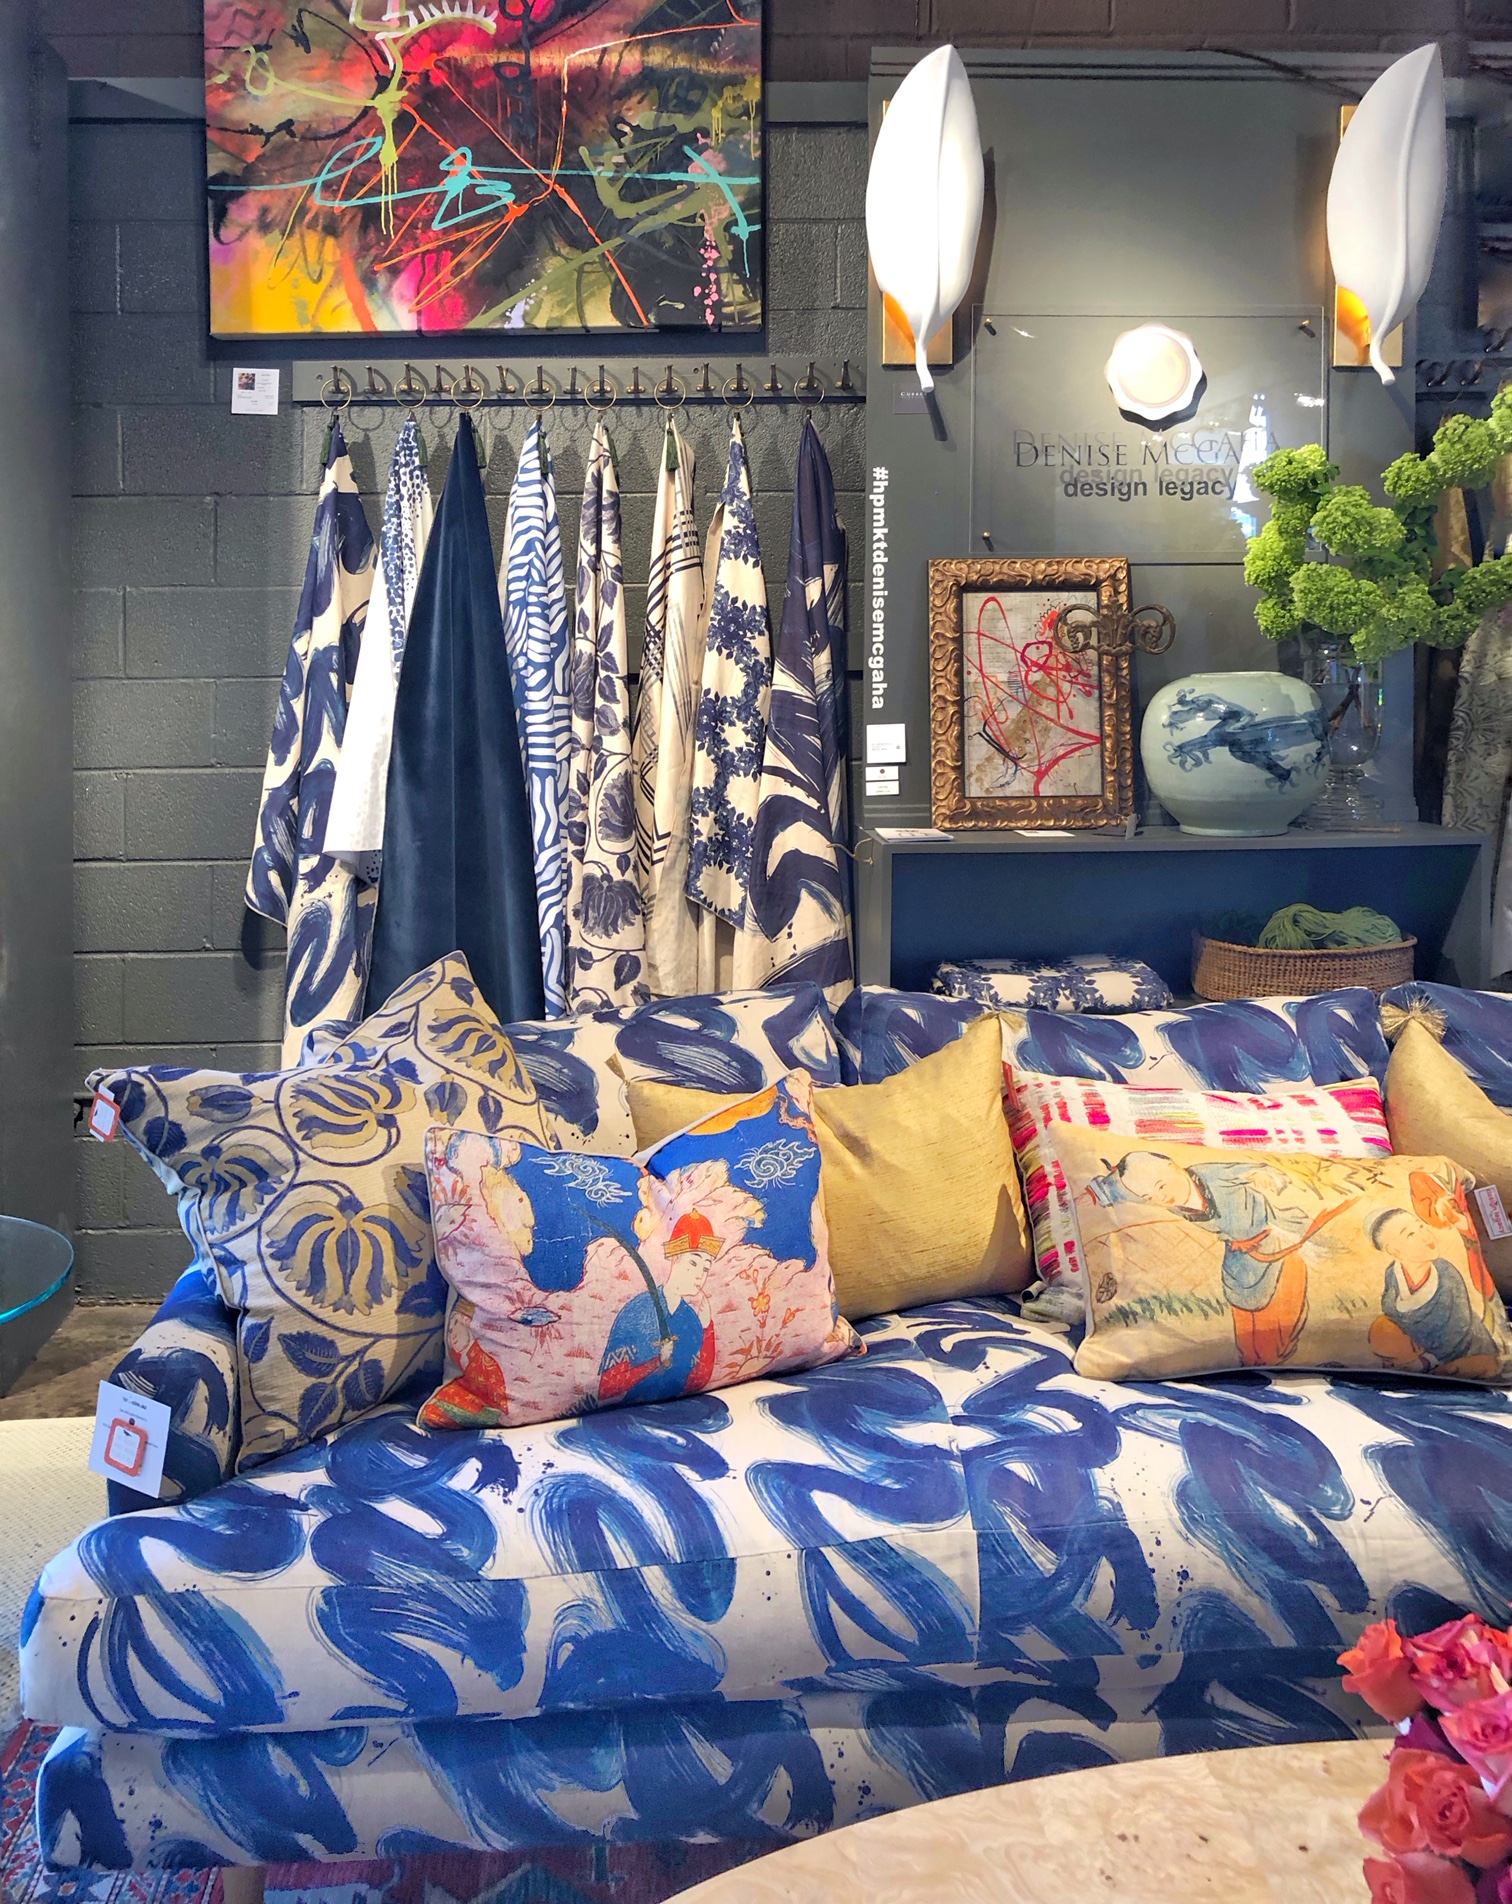 Design trends, patterned fabric on furniture